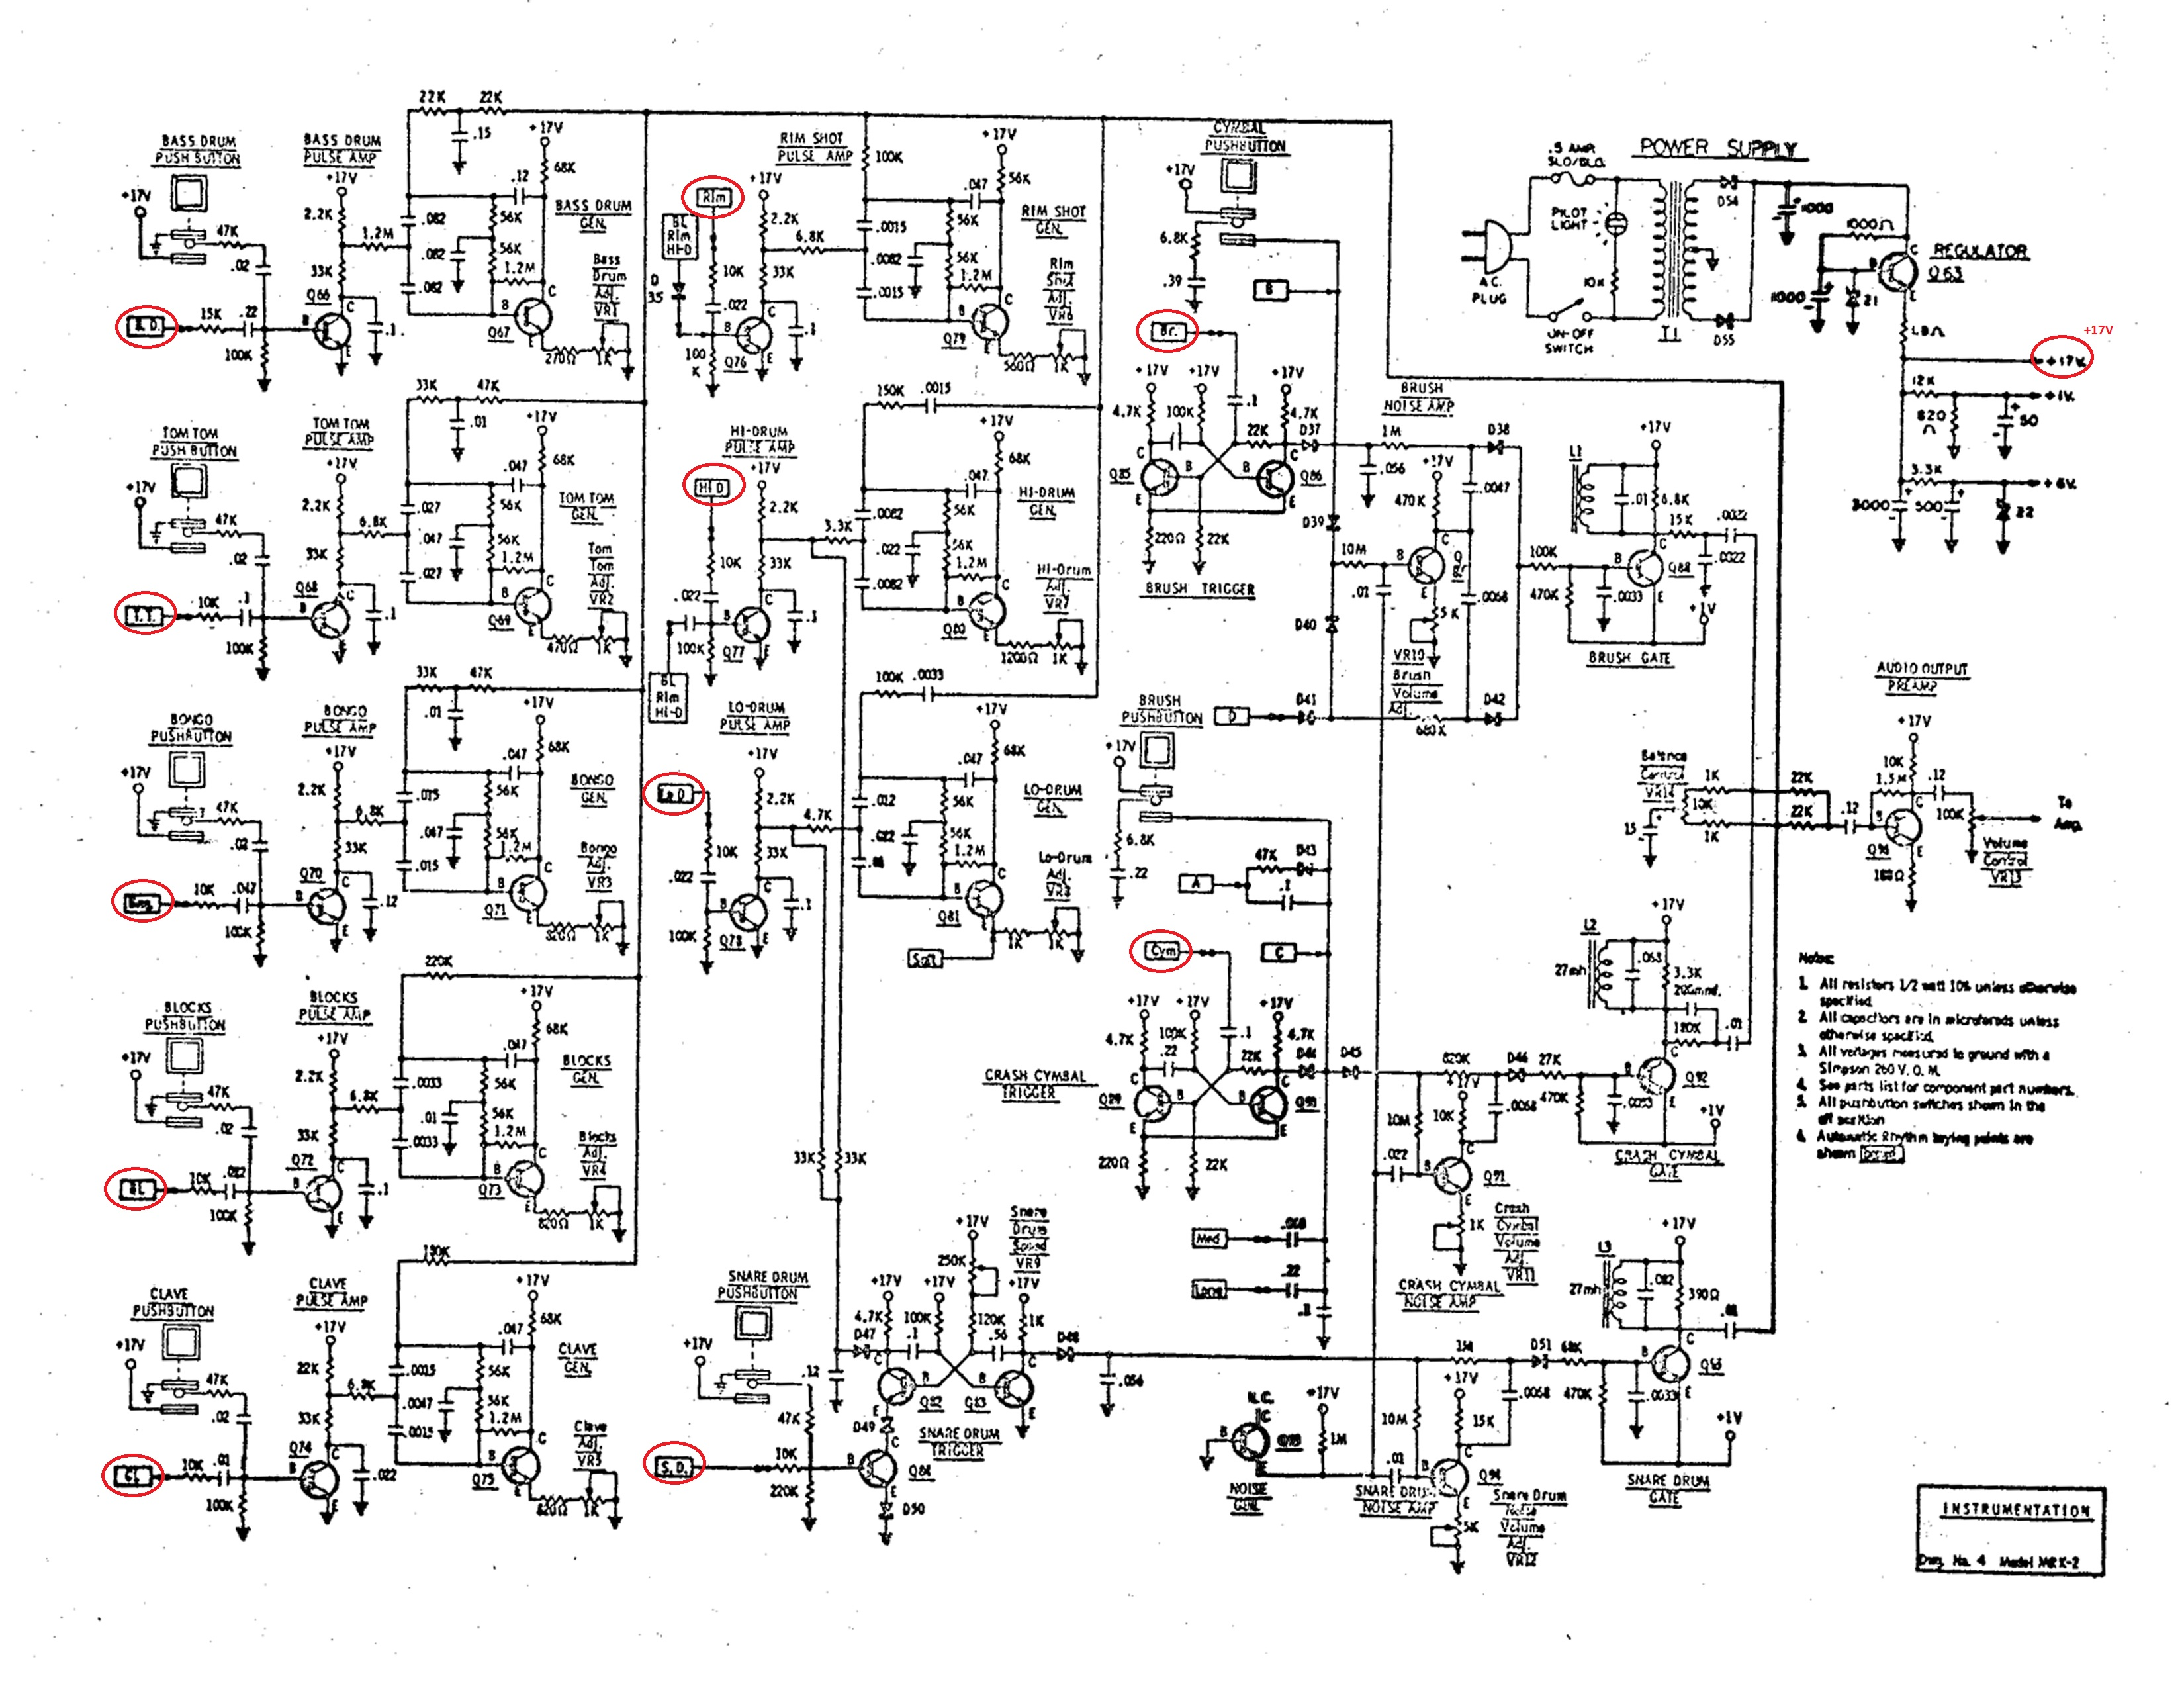 Tubbutec 0 12v Power Supply Circuit Diagram Here You Can See The Schematic And We Marked Unipulse Trigger Points Of All Voices In Upper Right Corner Also For